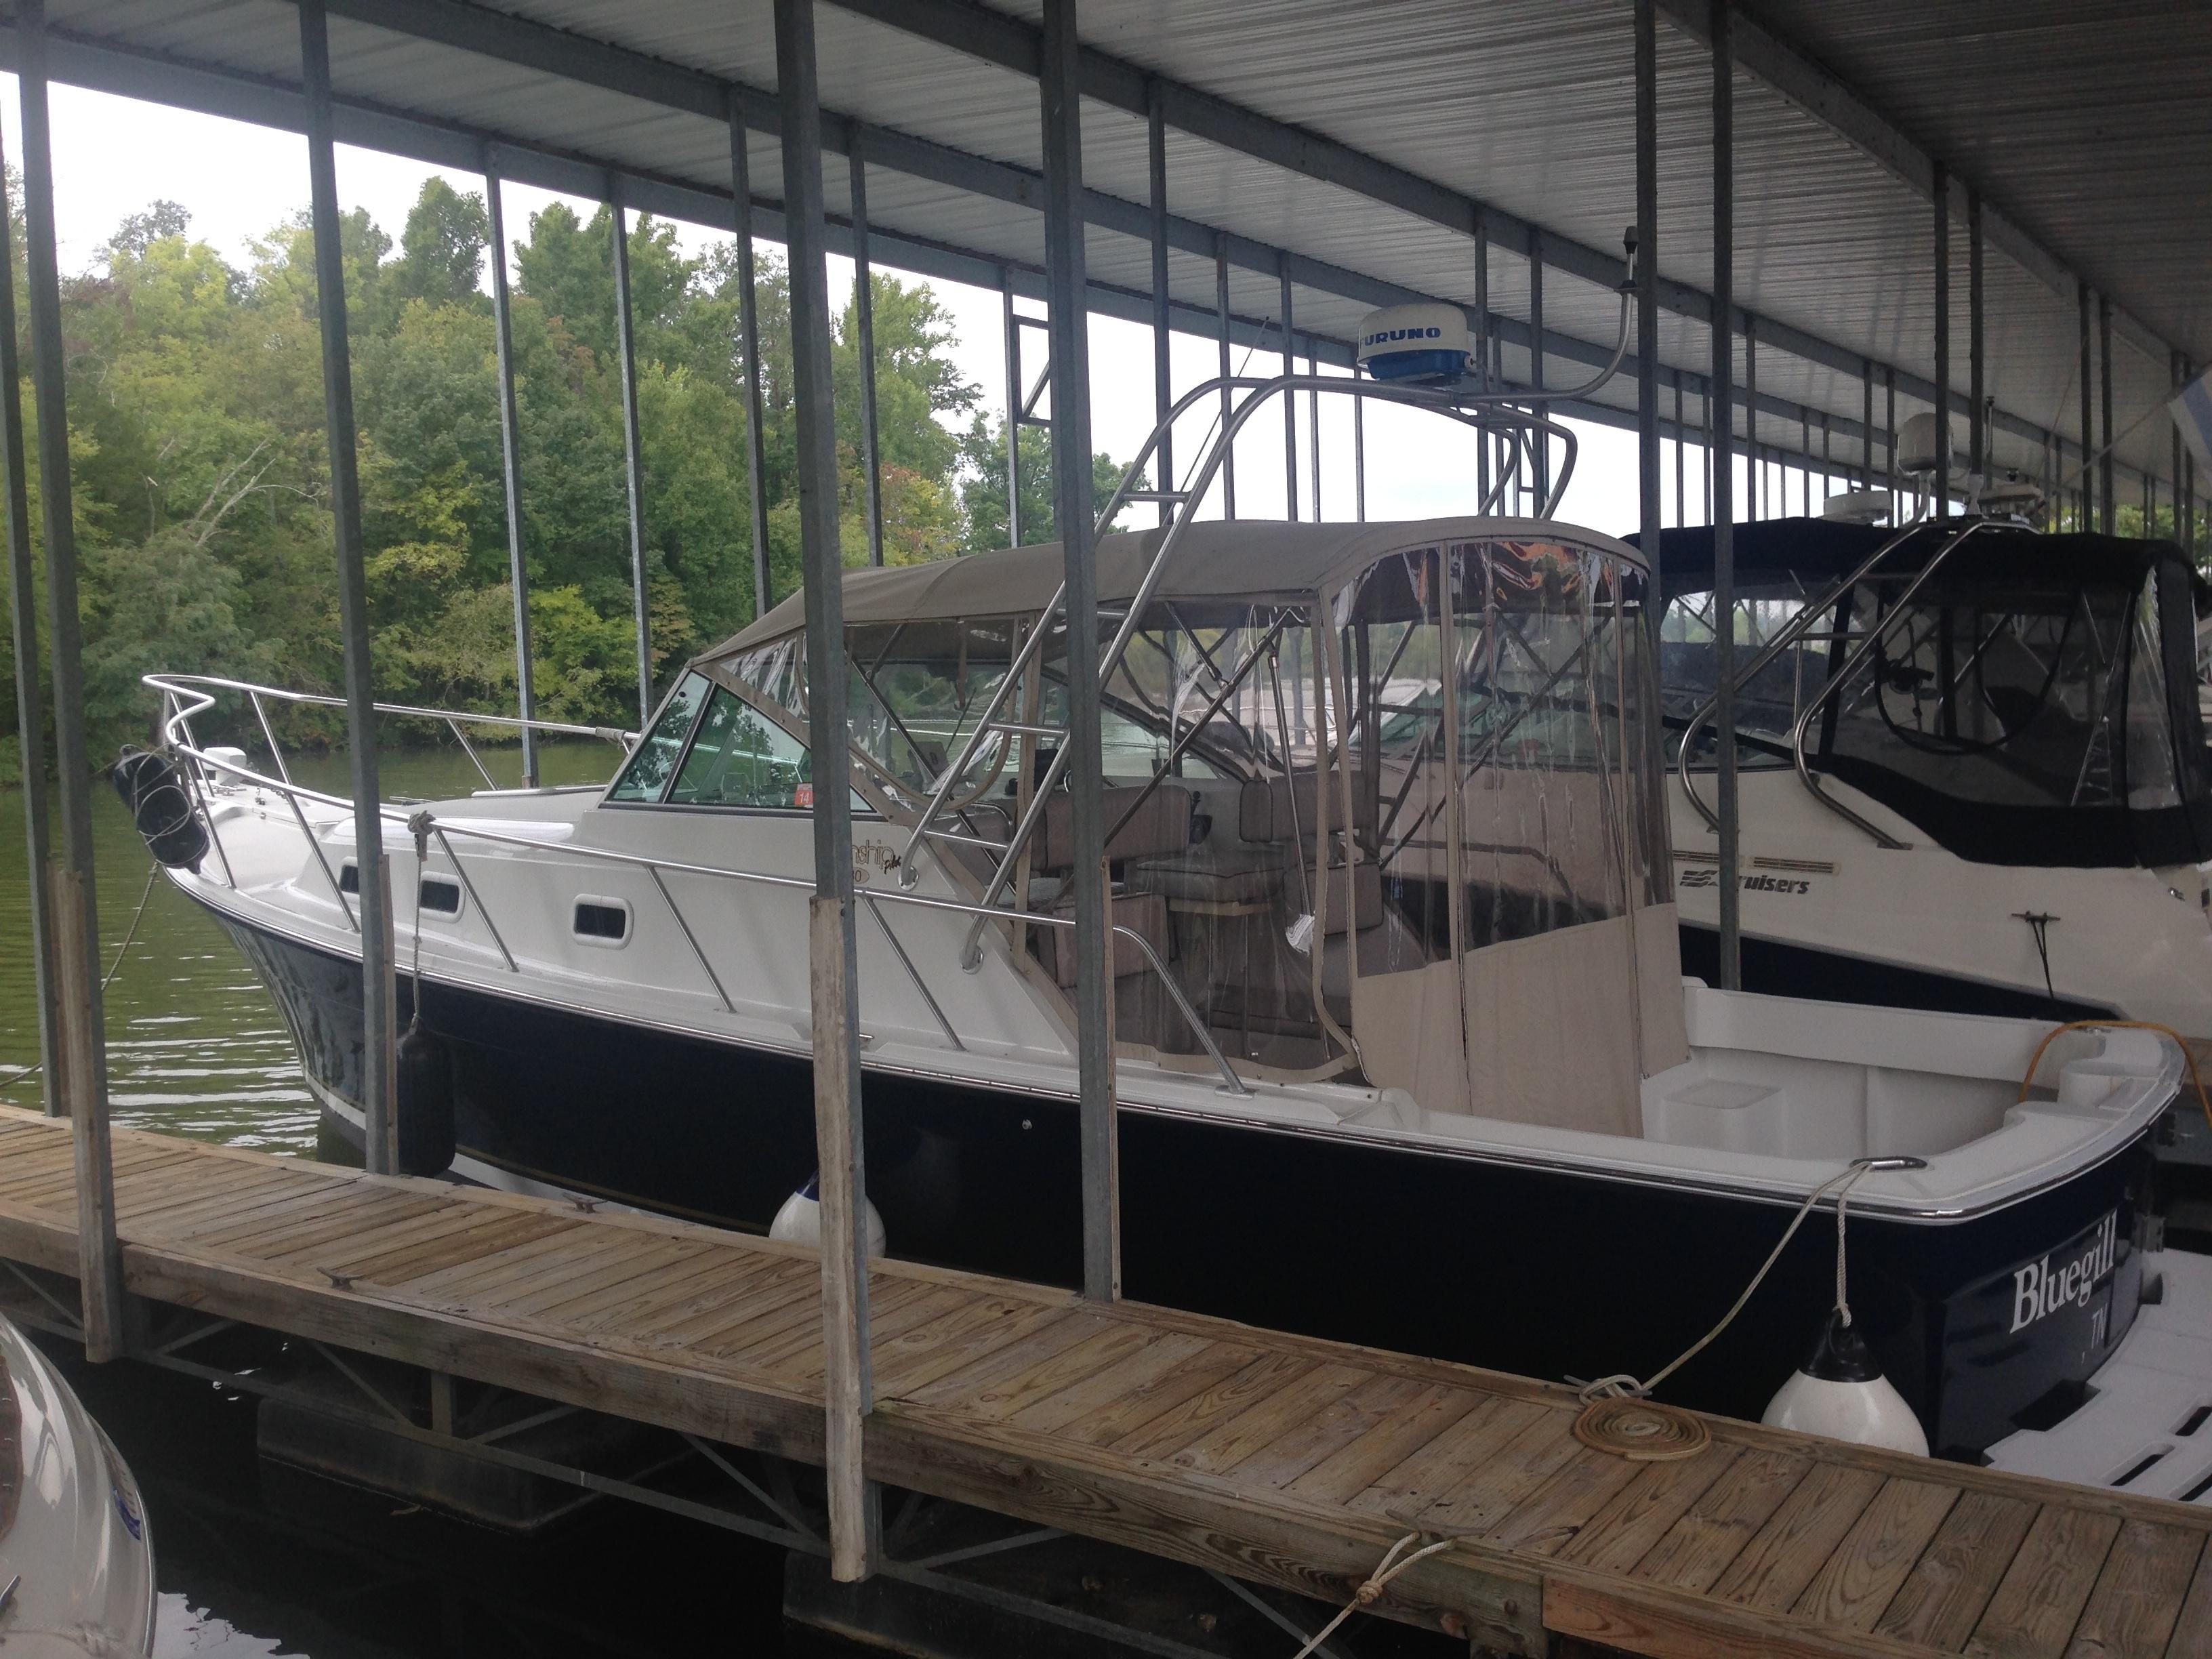 Used Boat: Used Boat Knoxville Tn